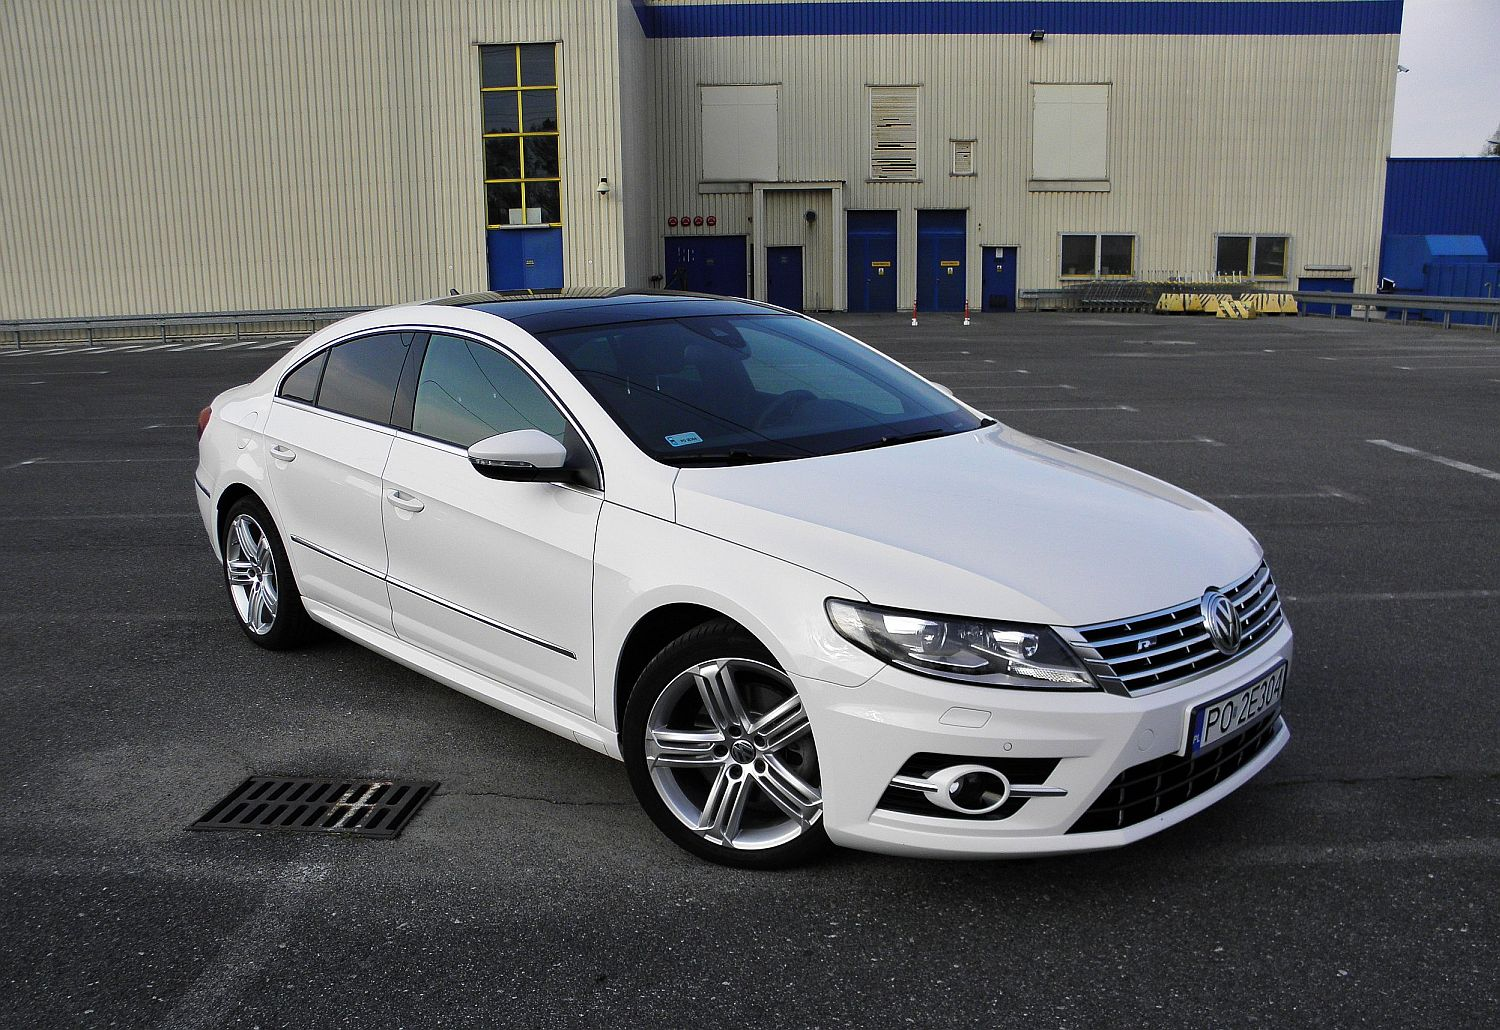 volkswagen cc 2 0 tsi dsg r line adniejsza strona volkswagena namasce. Black Bedroom Furniture Sets. Home Design Ideas